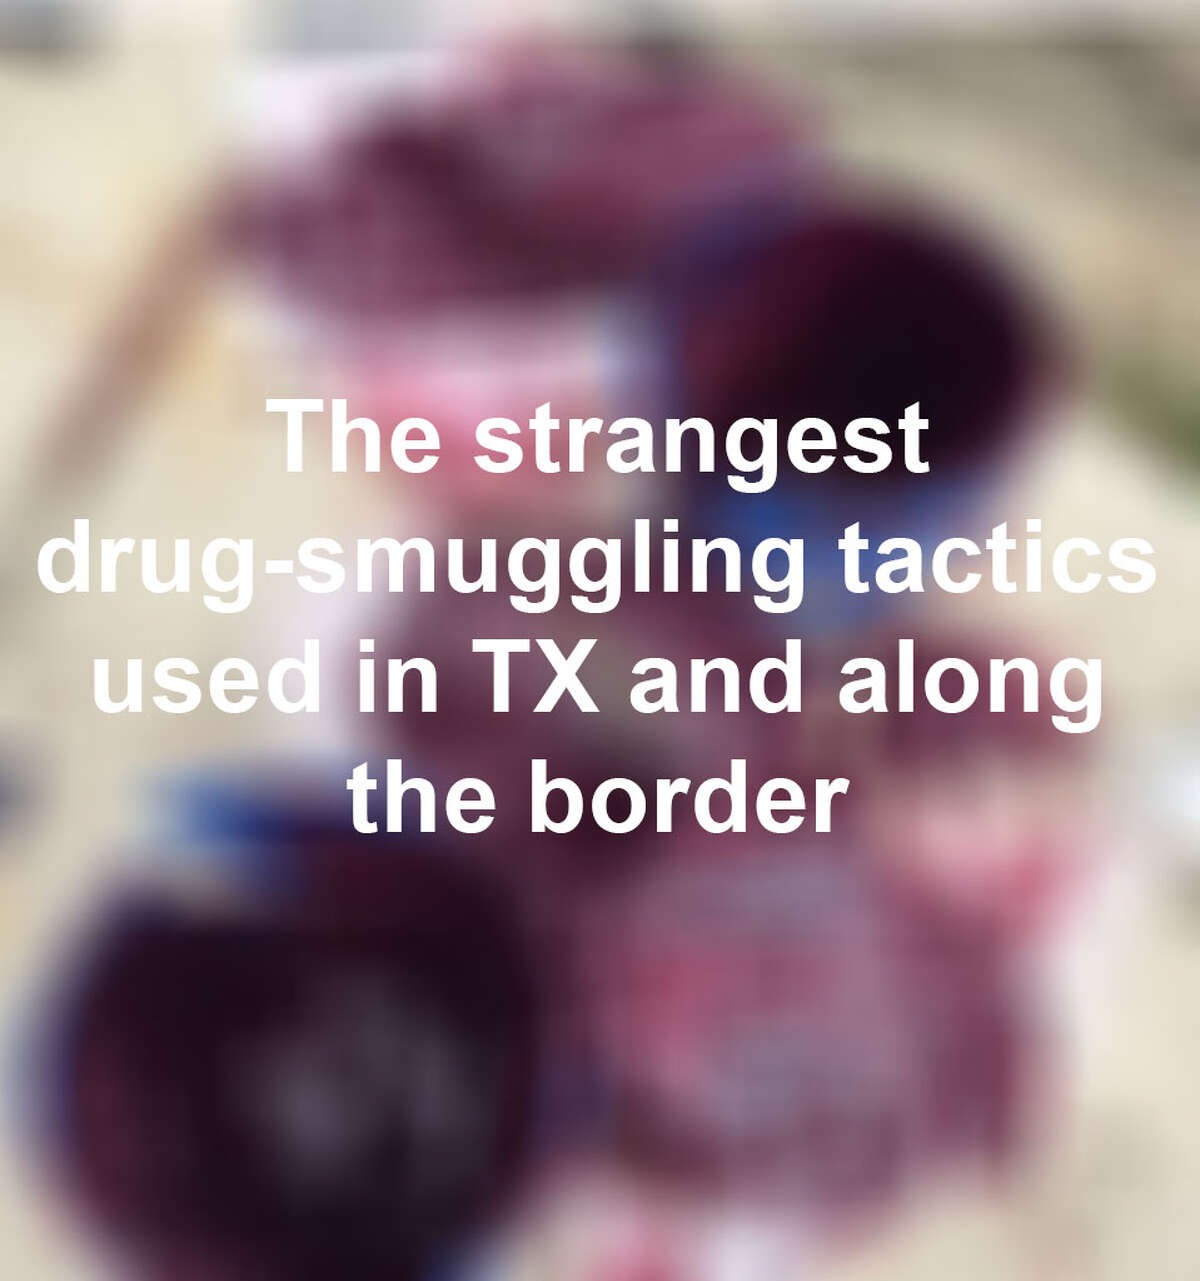 Drug traffickers seem to be getting more creative in their attempts to smuggle drugs.